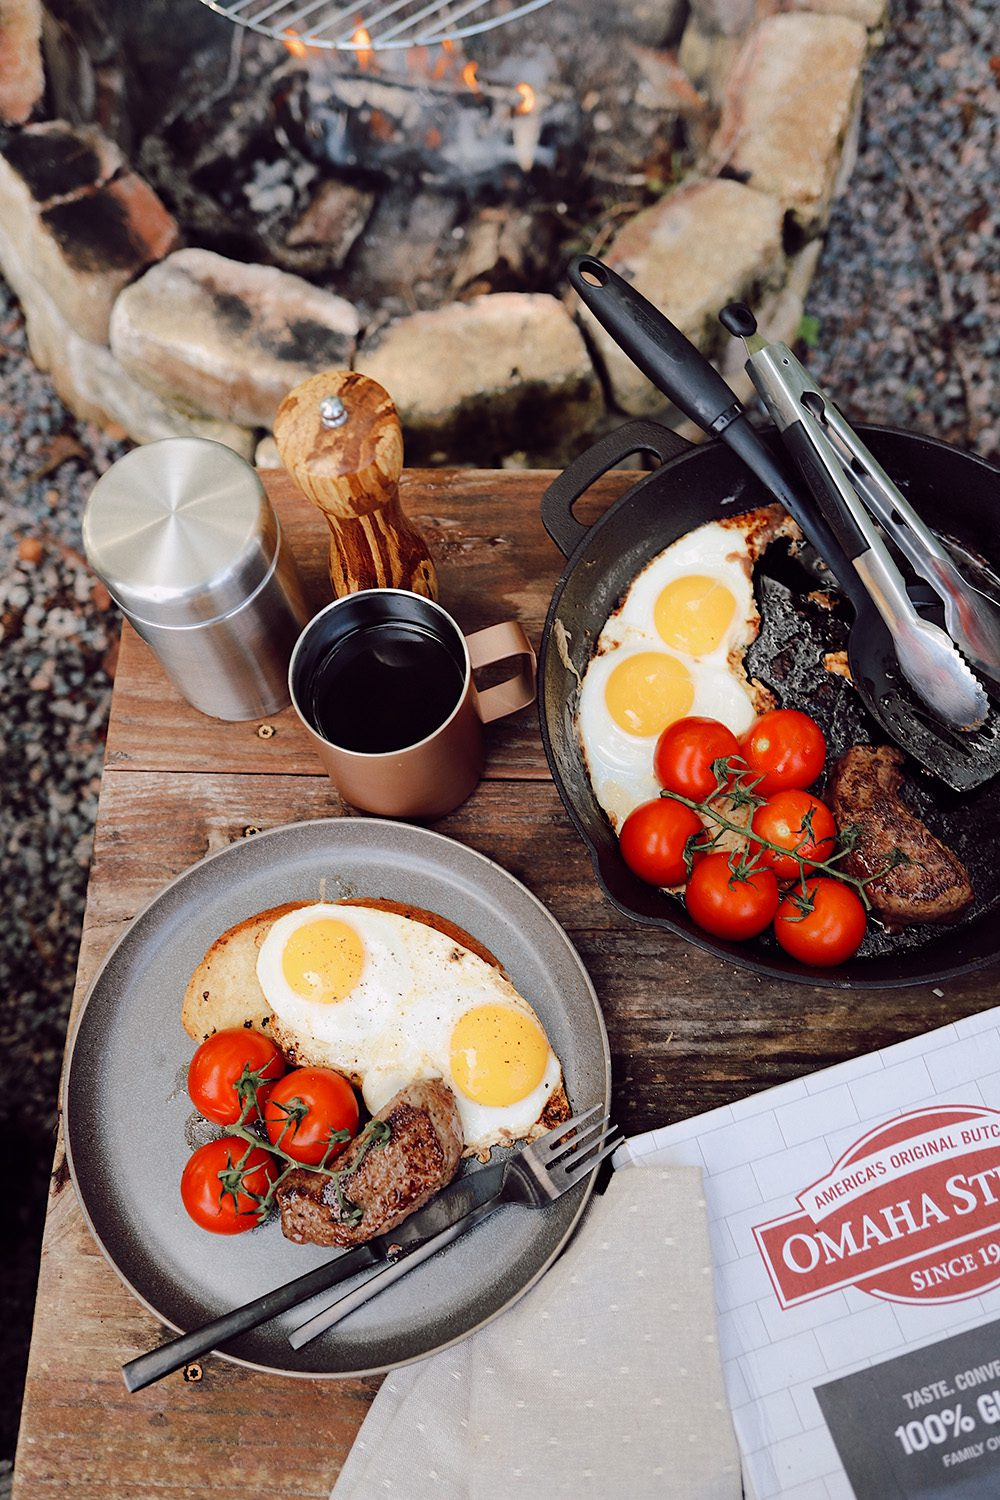 Over the Fire Cooking Steak and Eggs Breakfast for a Delicious Campfire Meal